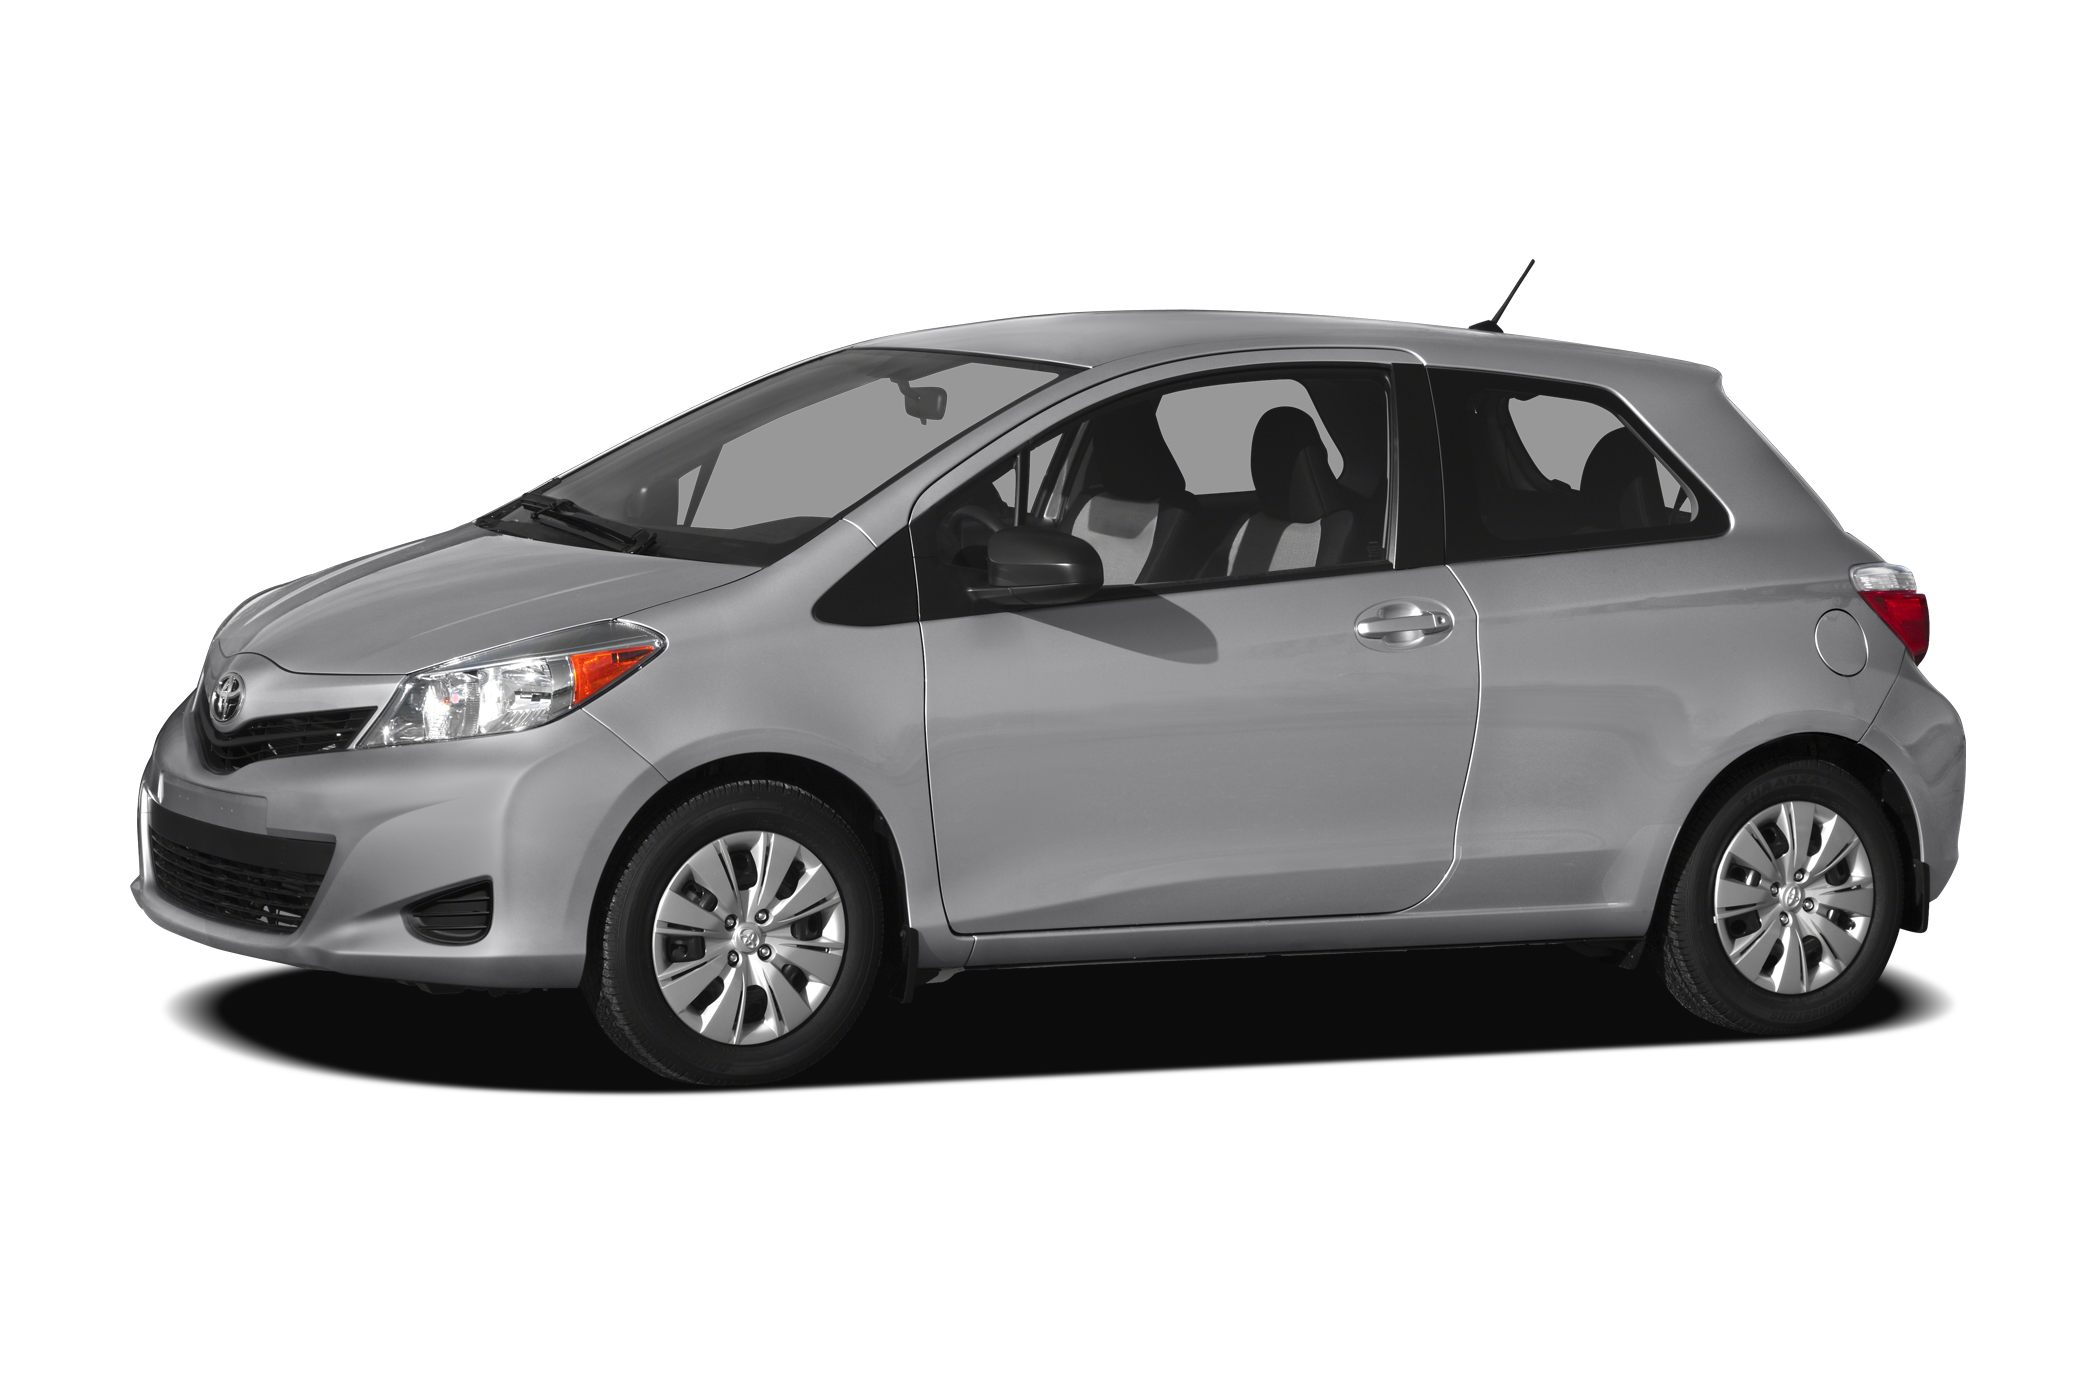 2012 Toyota Yaris L Prices are PLUS tax tag title fee 799 Pre-Delivery Service Fee and 185